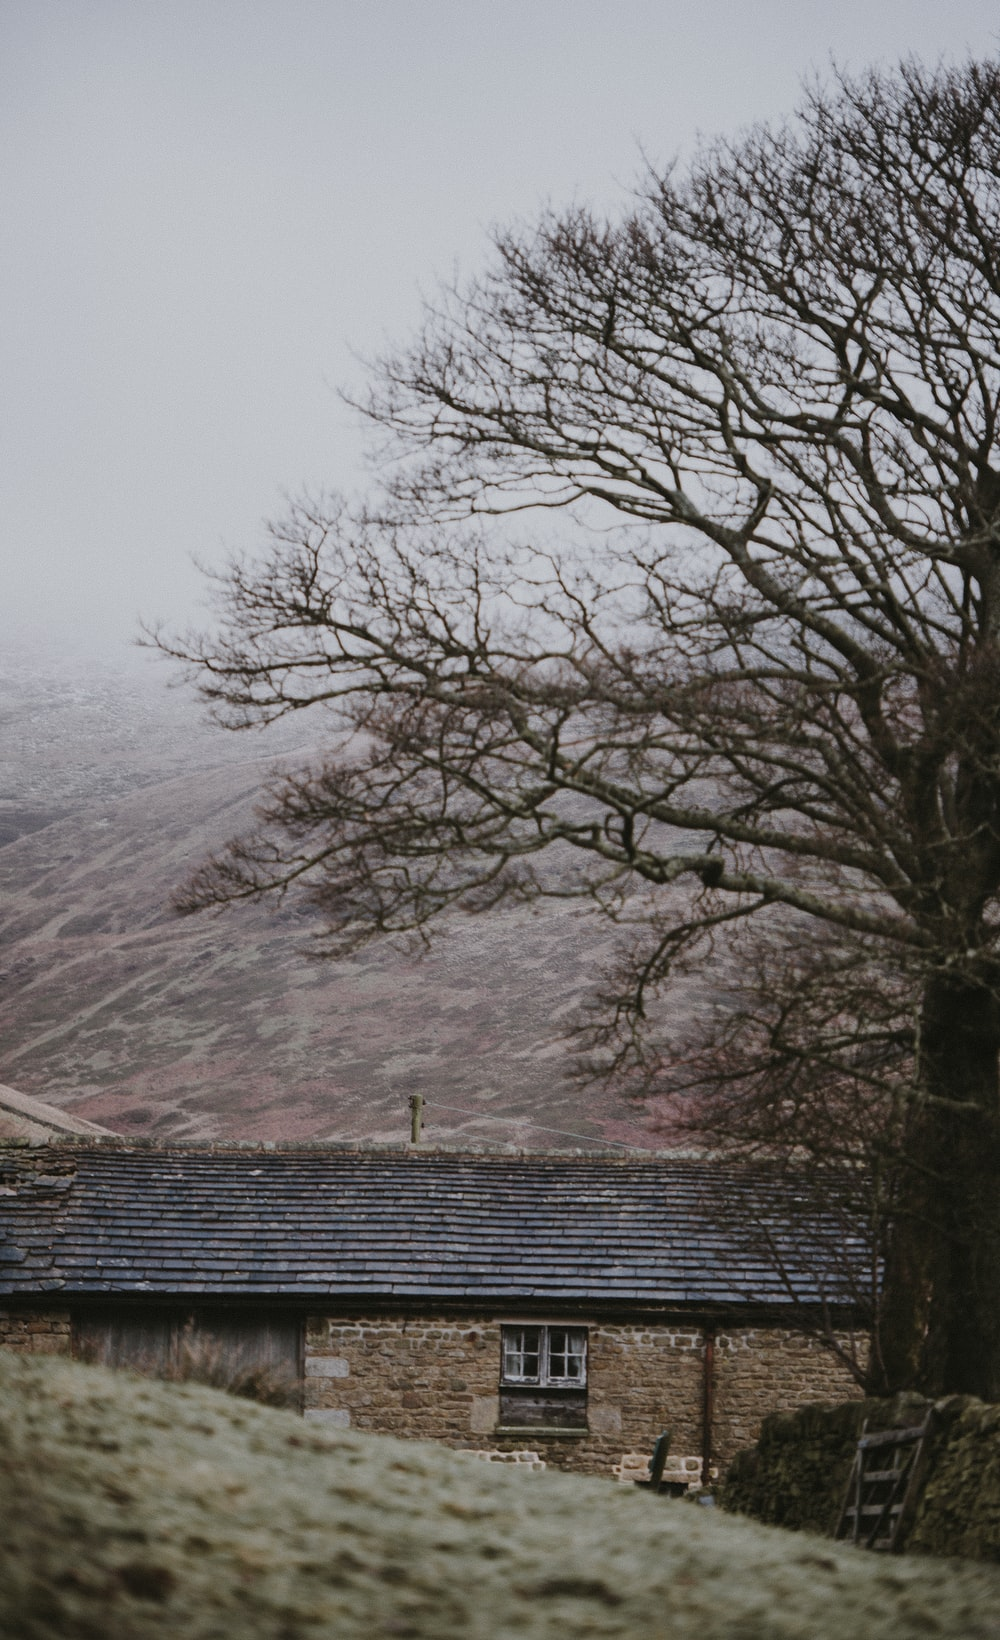 bare tree beside house taken at cloudy morning